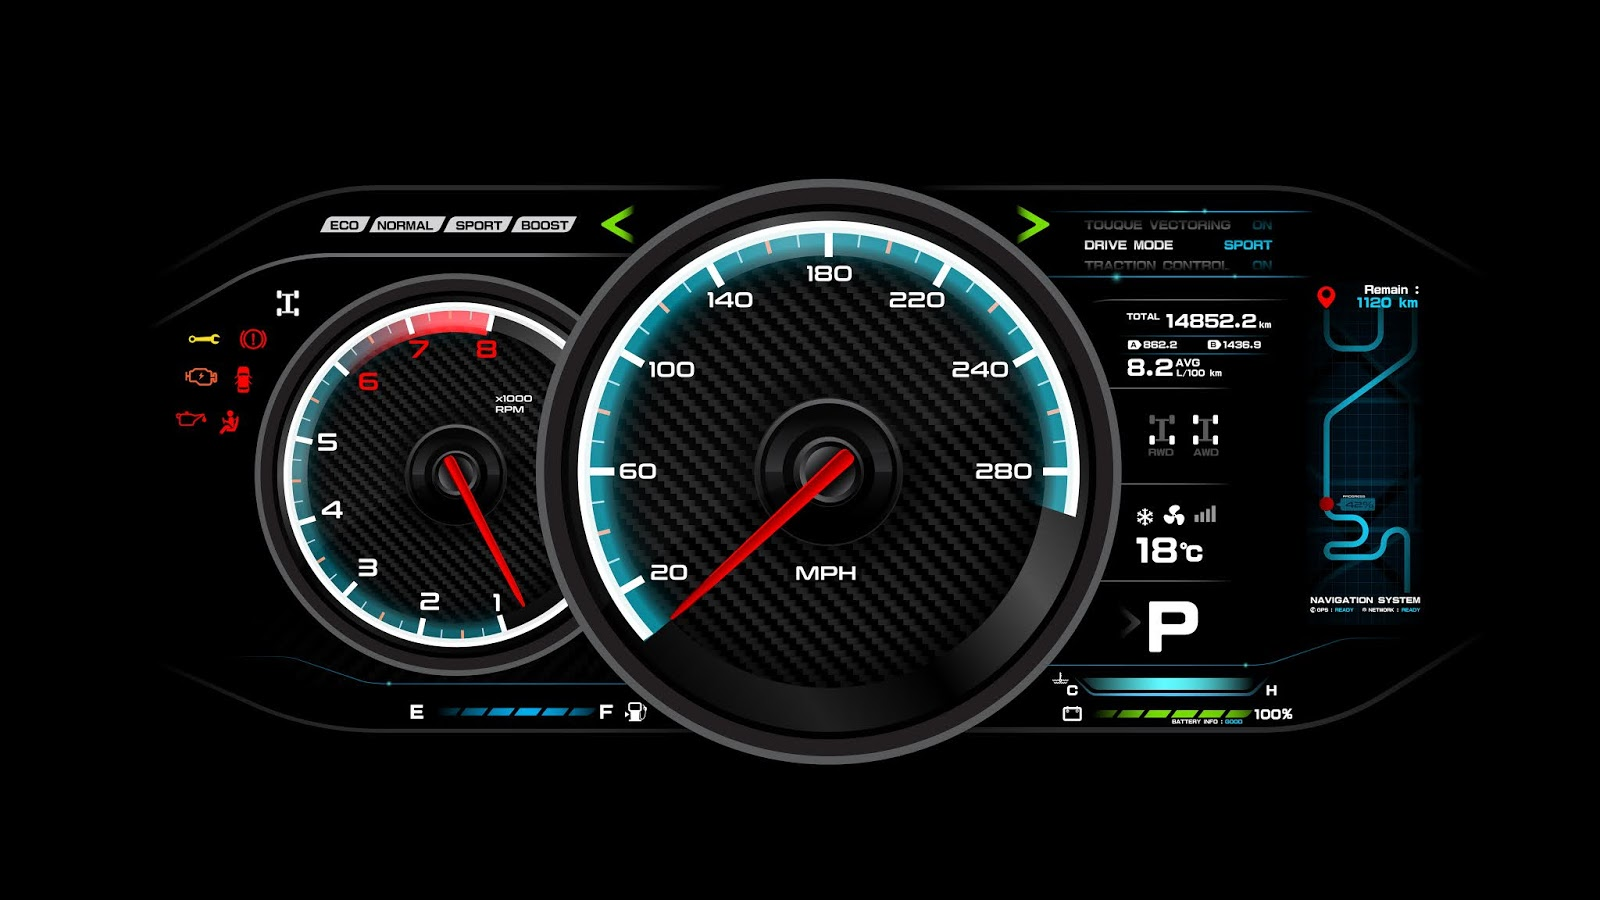 Car Dash Board Vector Illustration Free Download Vector CDR, AI, EPS and PNG Formats